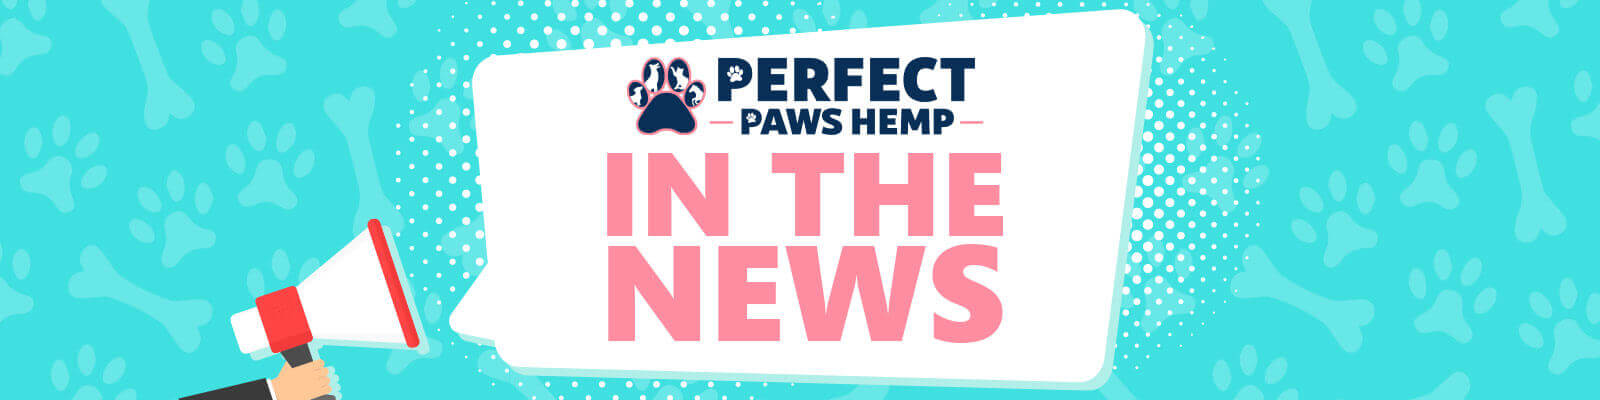 Perfect Paws Hemp In the News Banner